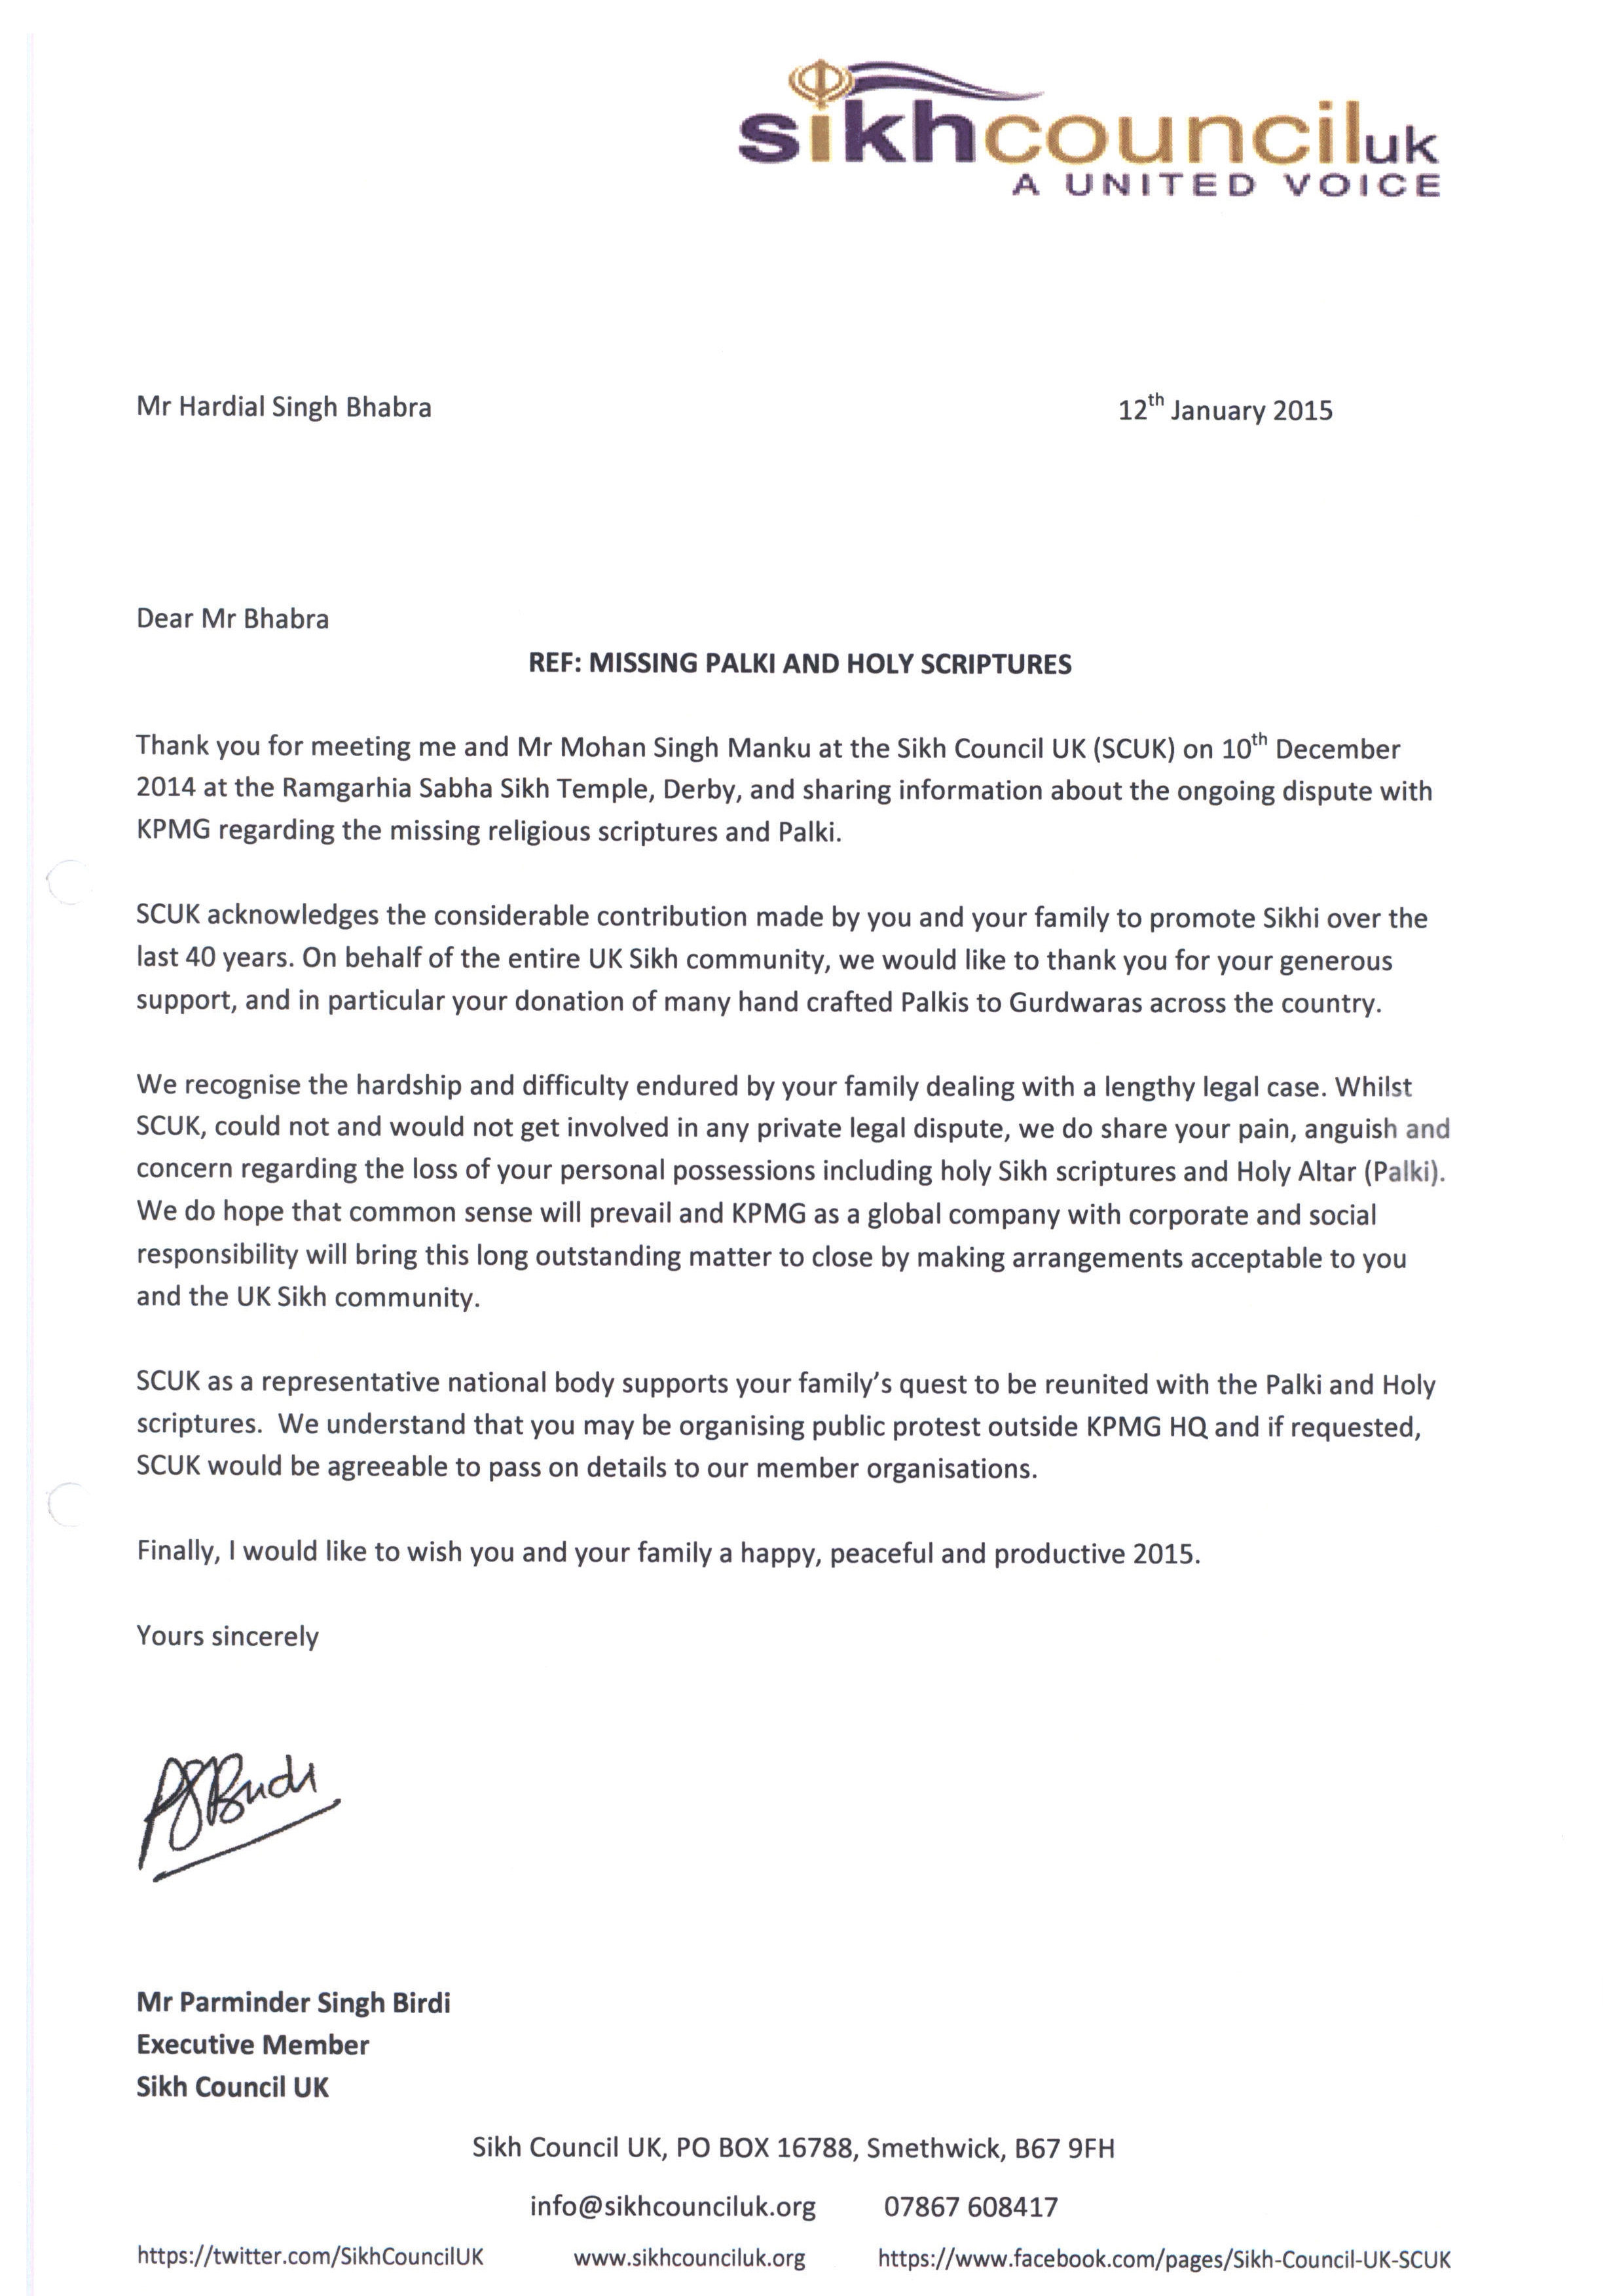 01_letter_Sikh Council_A4.jpg